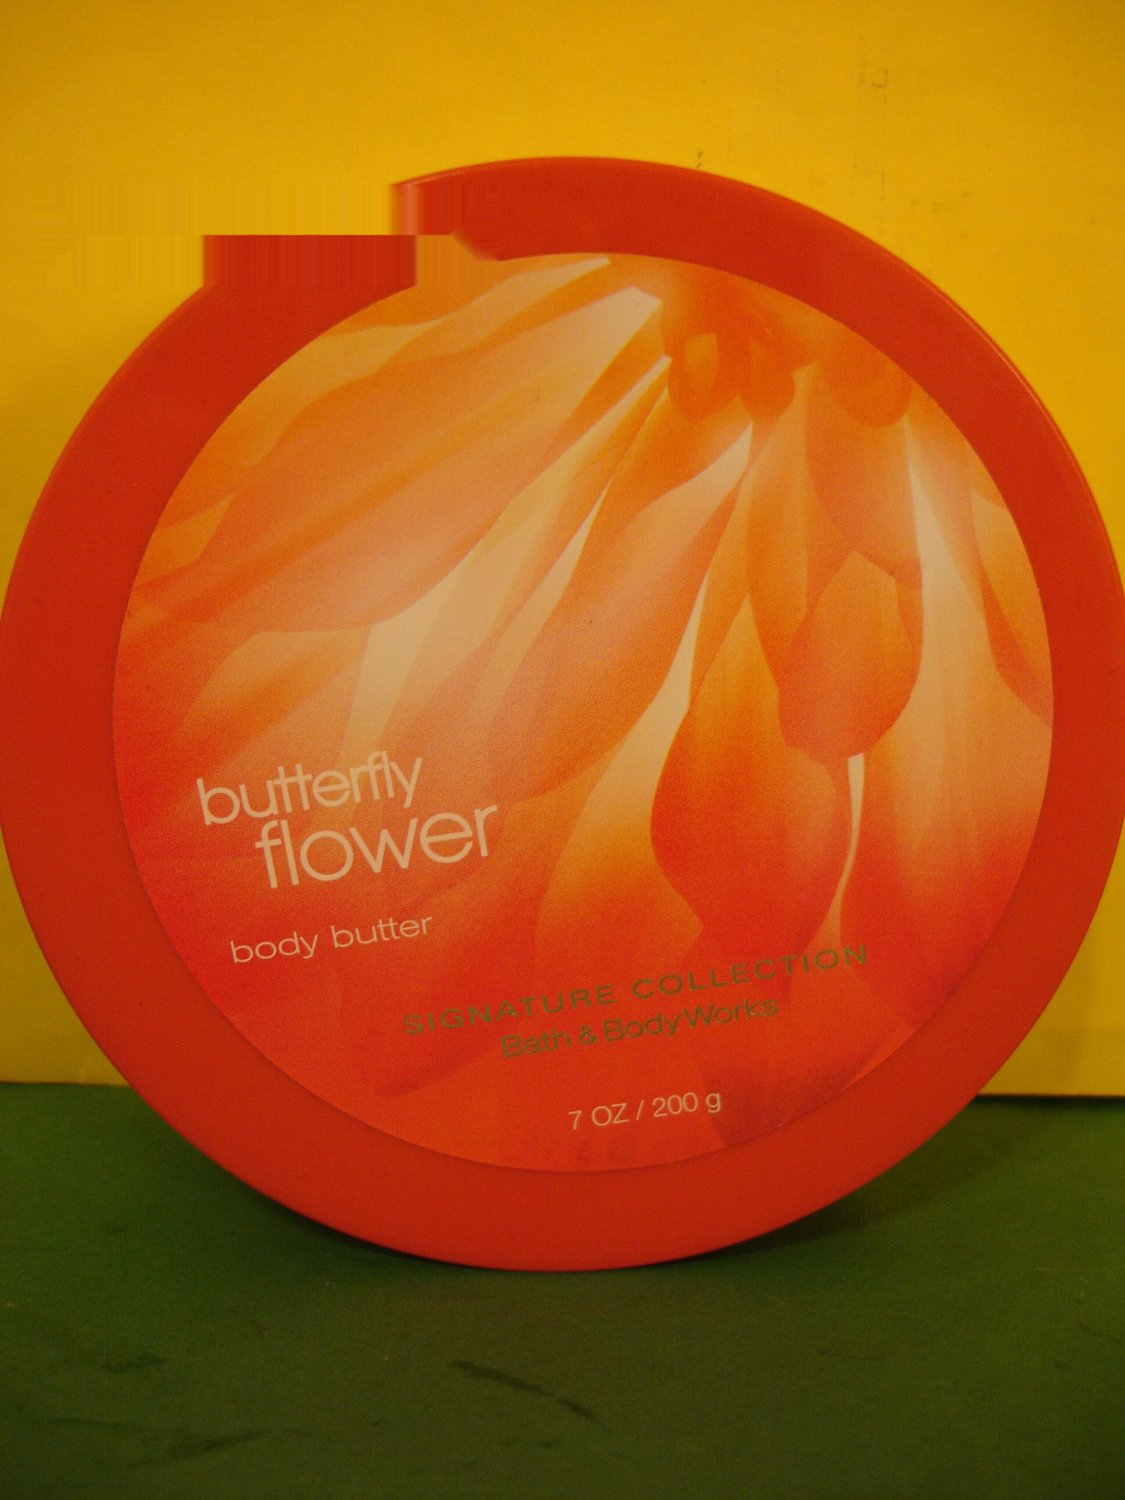 Bath and Body Works Butterfly Flower Body Butter Full Size